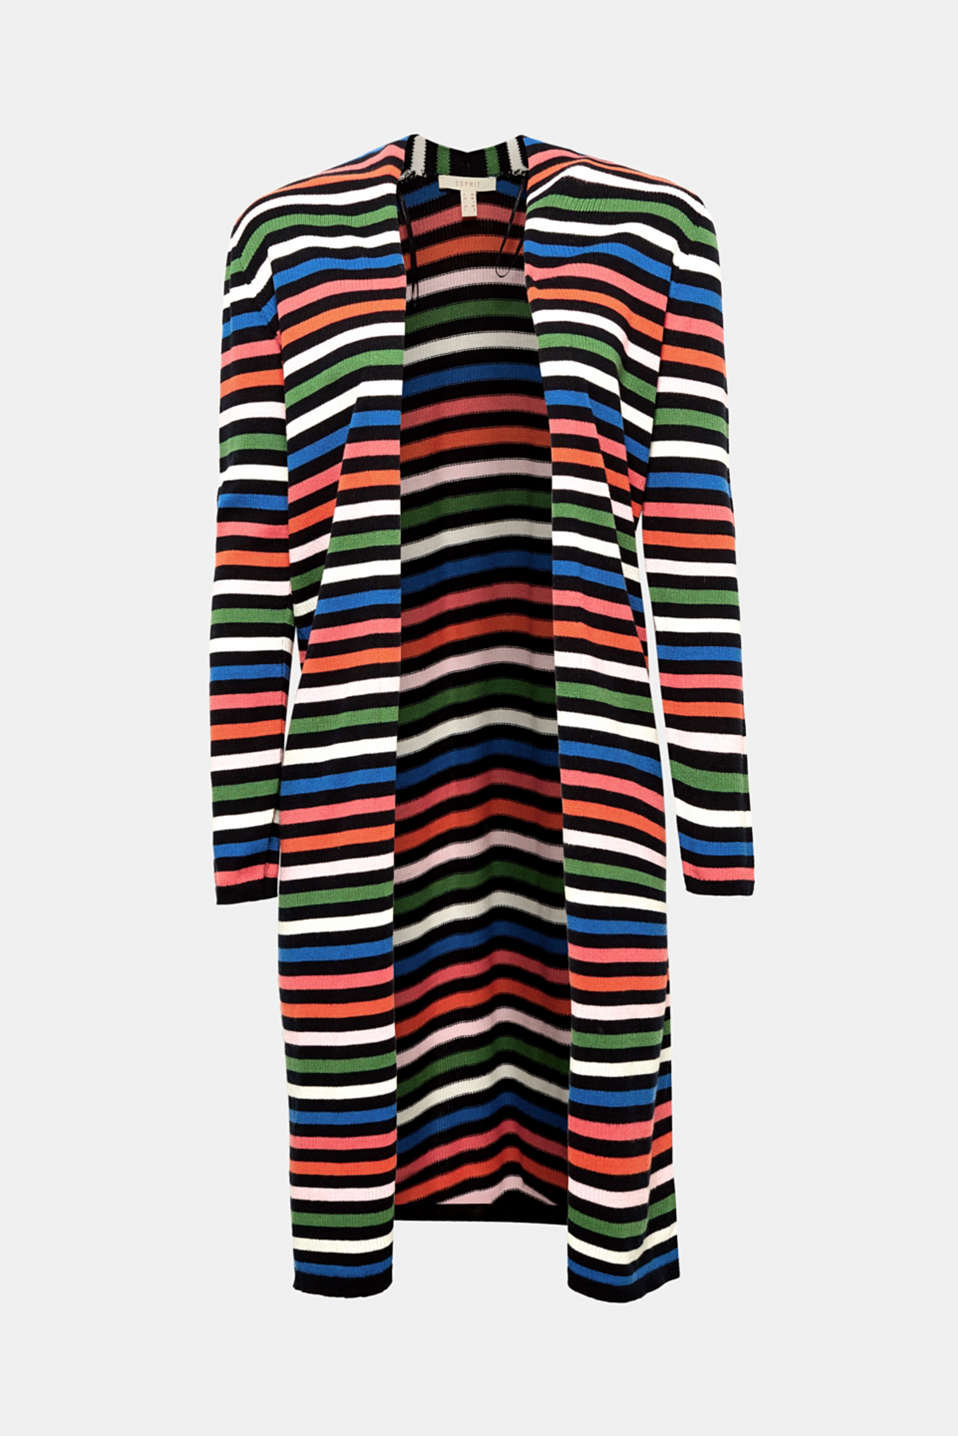 The multicoloured striped pattern and trendy long design make this open cardigan a great eye-catching piece.